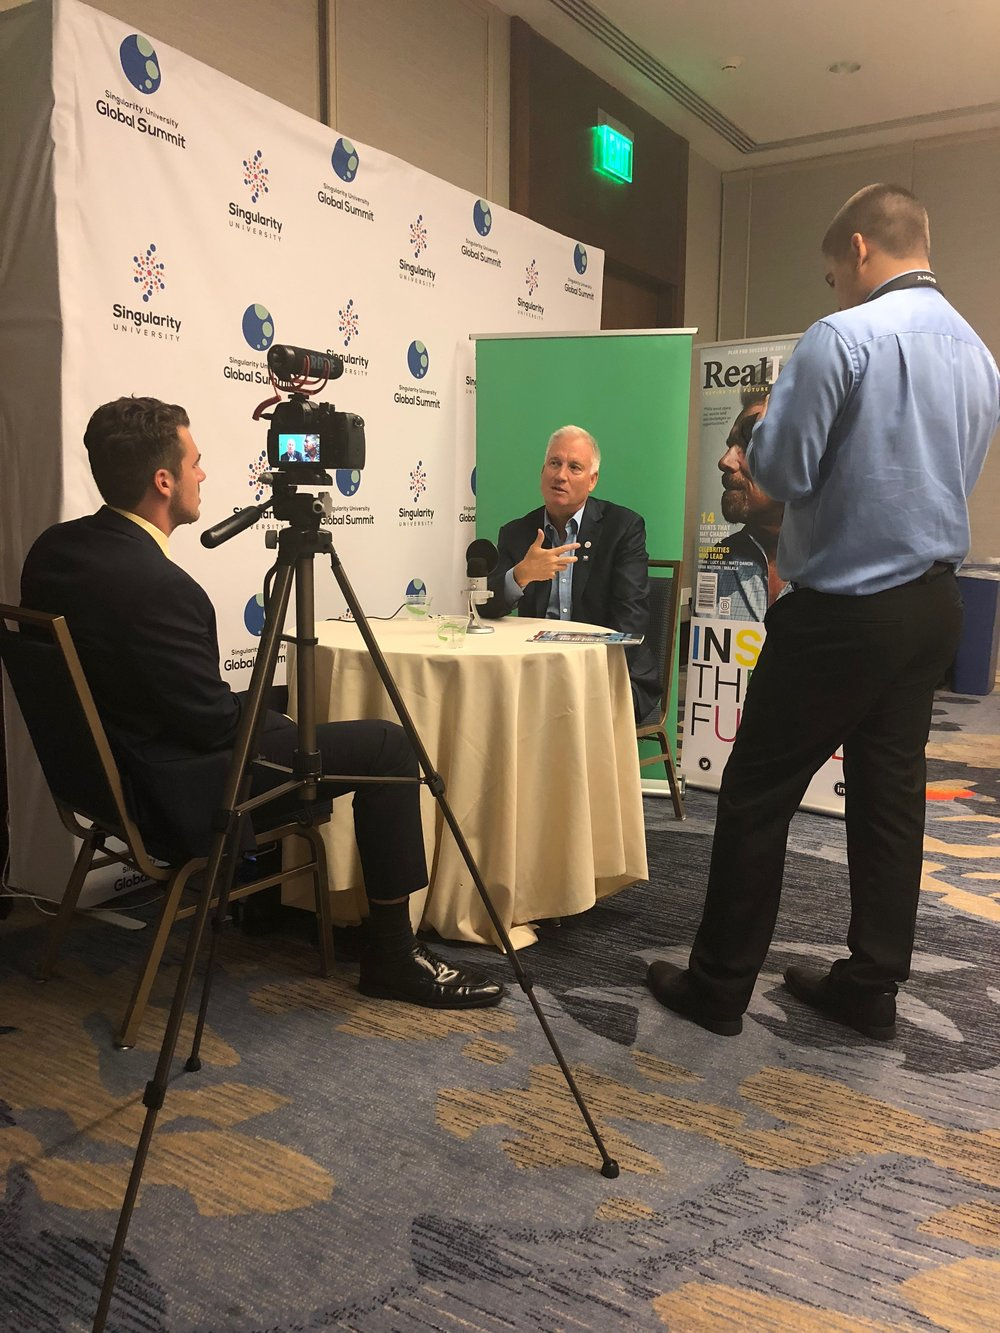 Singularity University's executive chairman, Erik Anderson, is interviewed by media at Global Summit.